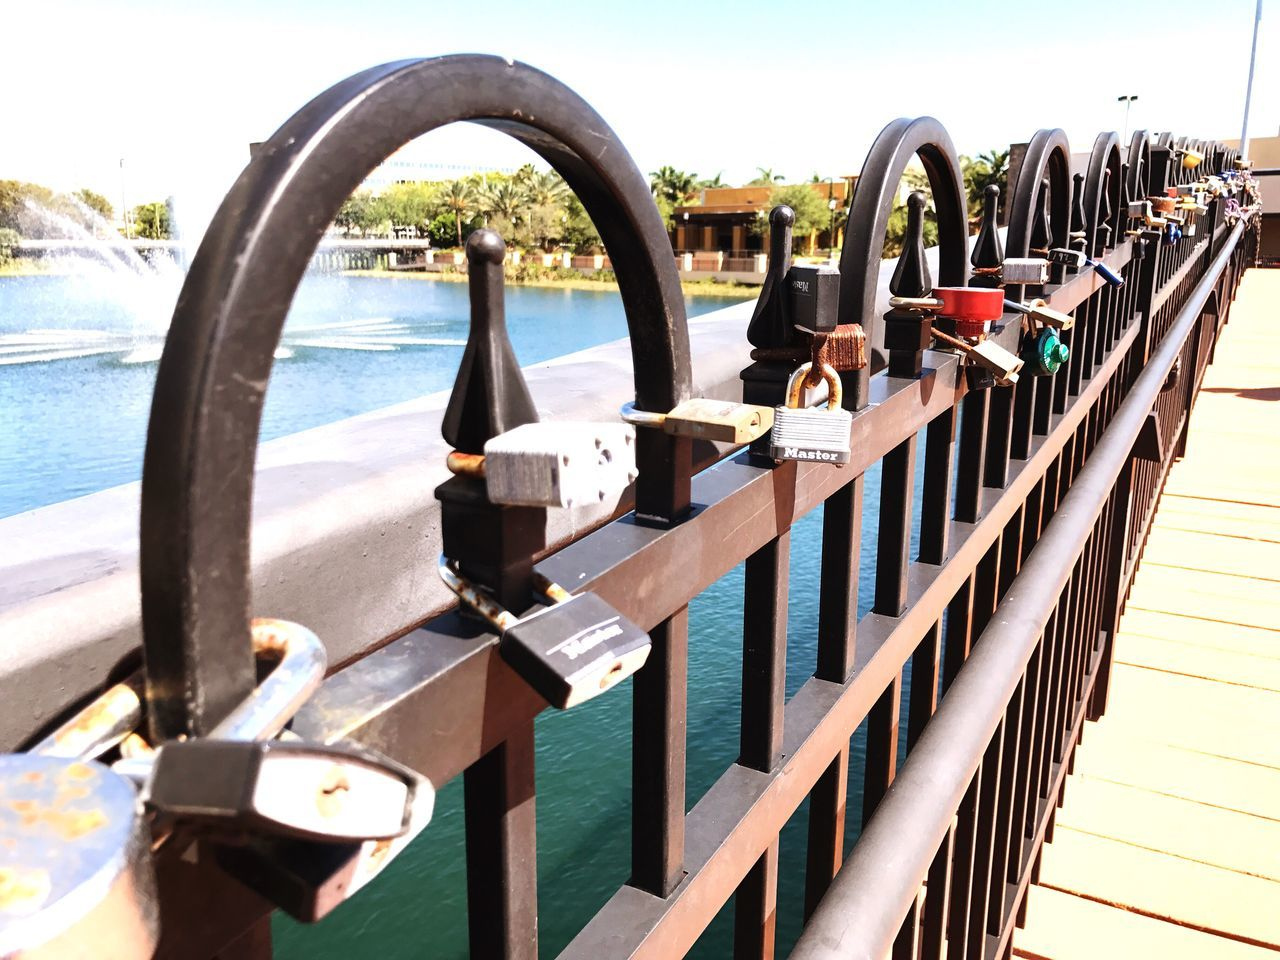 padlock, railing, lock, metal, love lock, security, safety, water, day, outdoors, river, no people, sunlight, bridge - man made structure, sky, nature, clear sky, nautical vessel, close-up